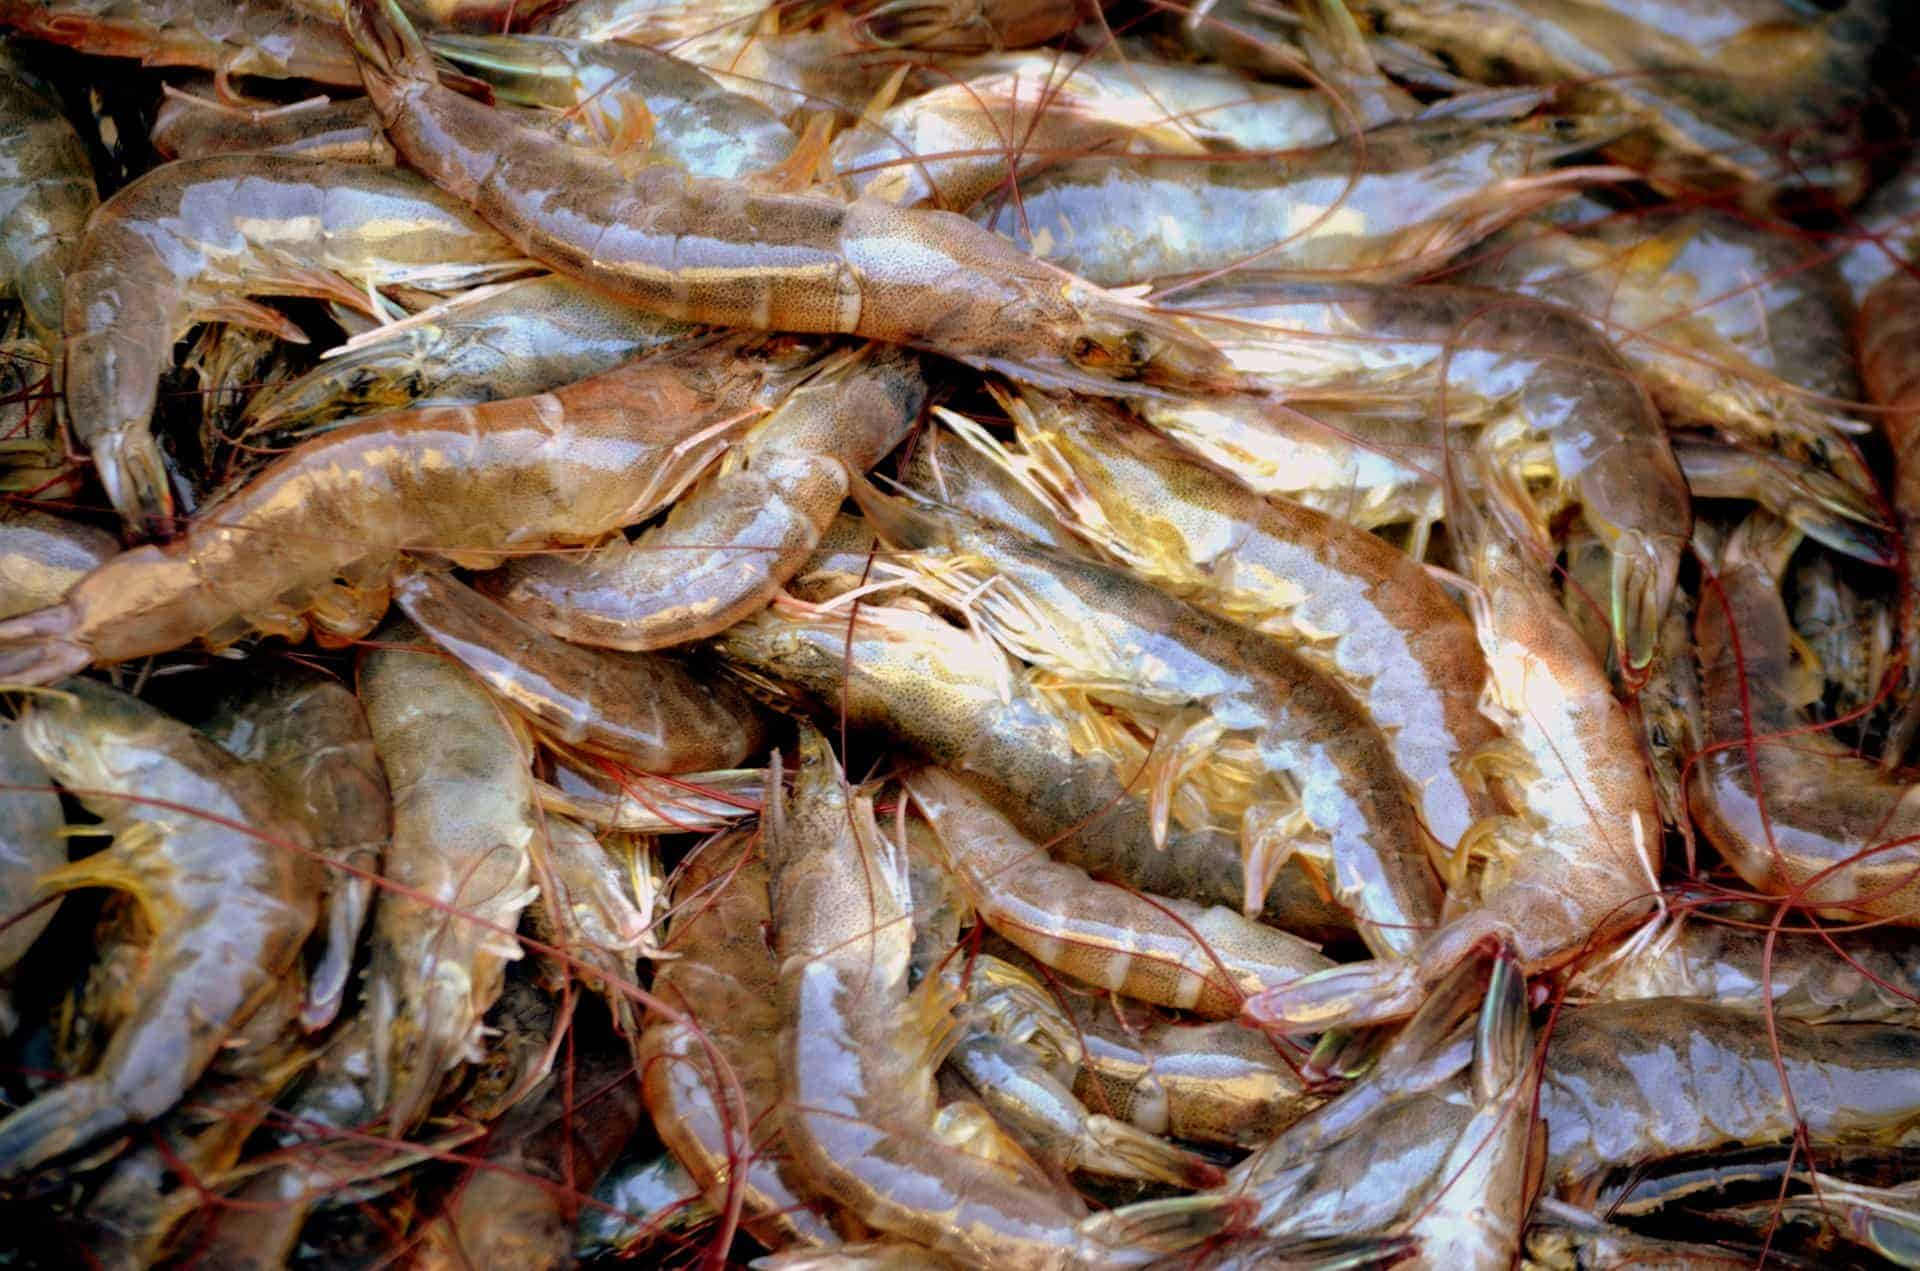 What's in your Shrimp?